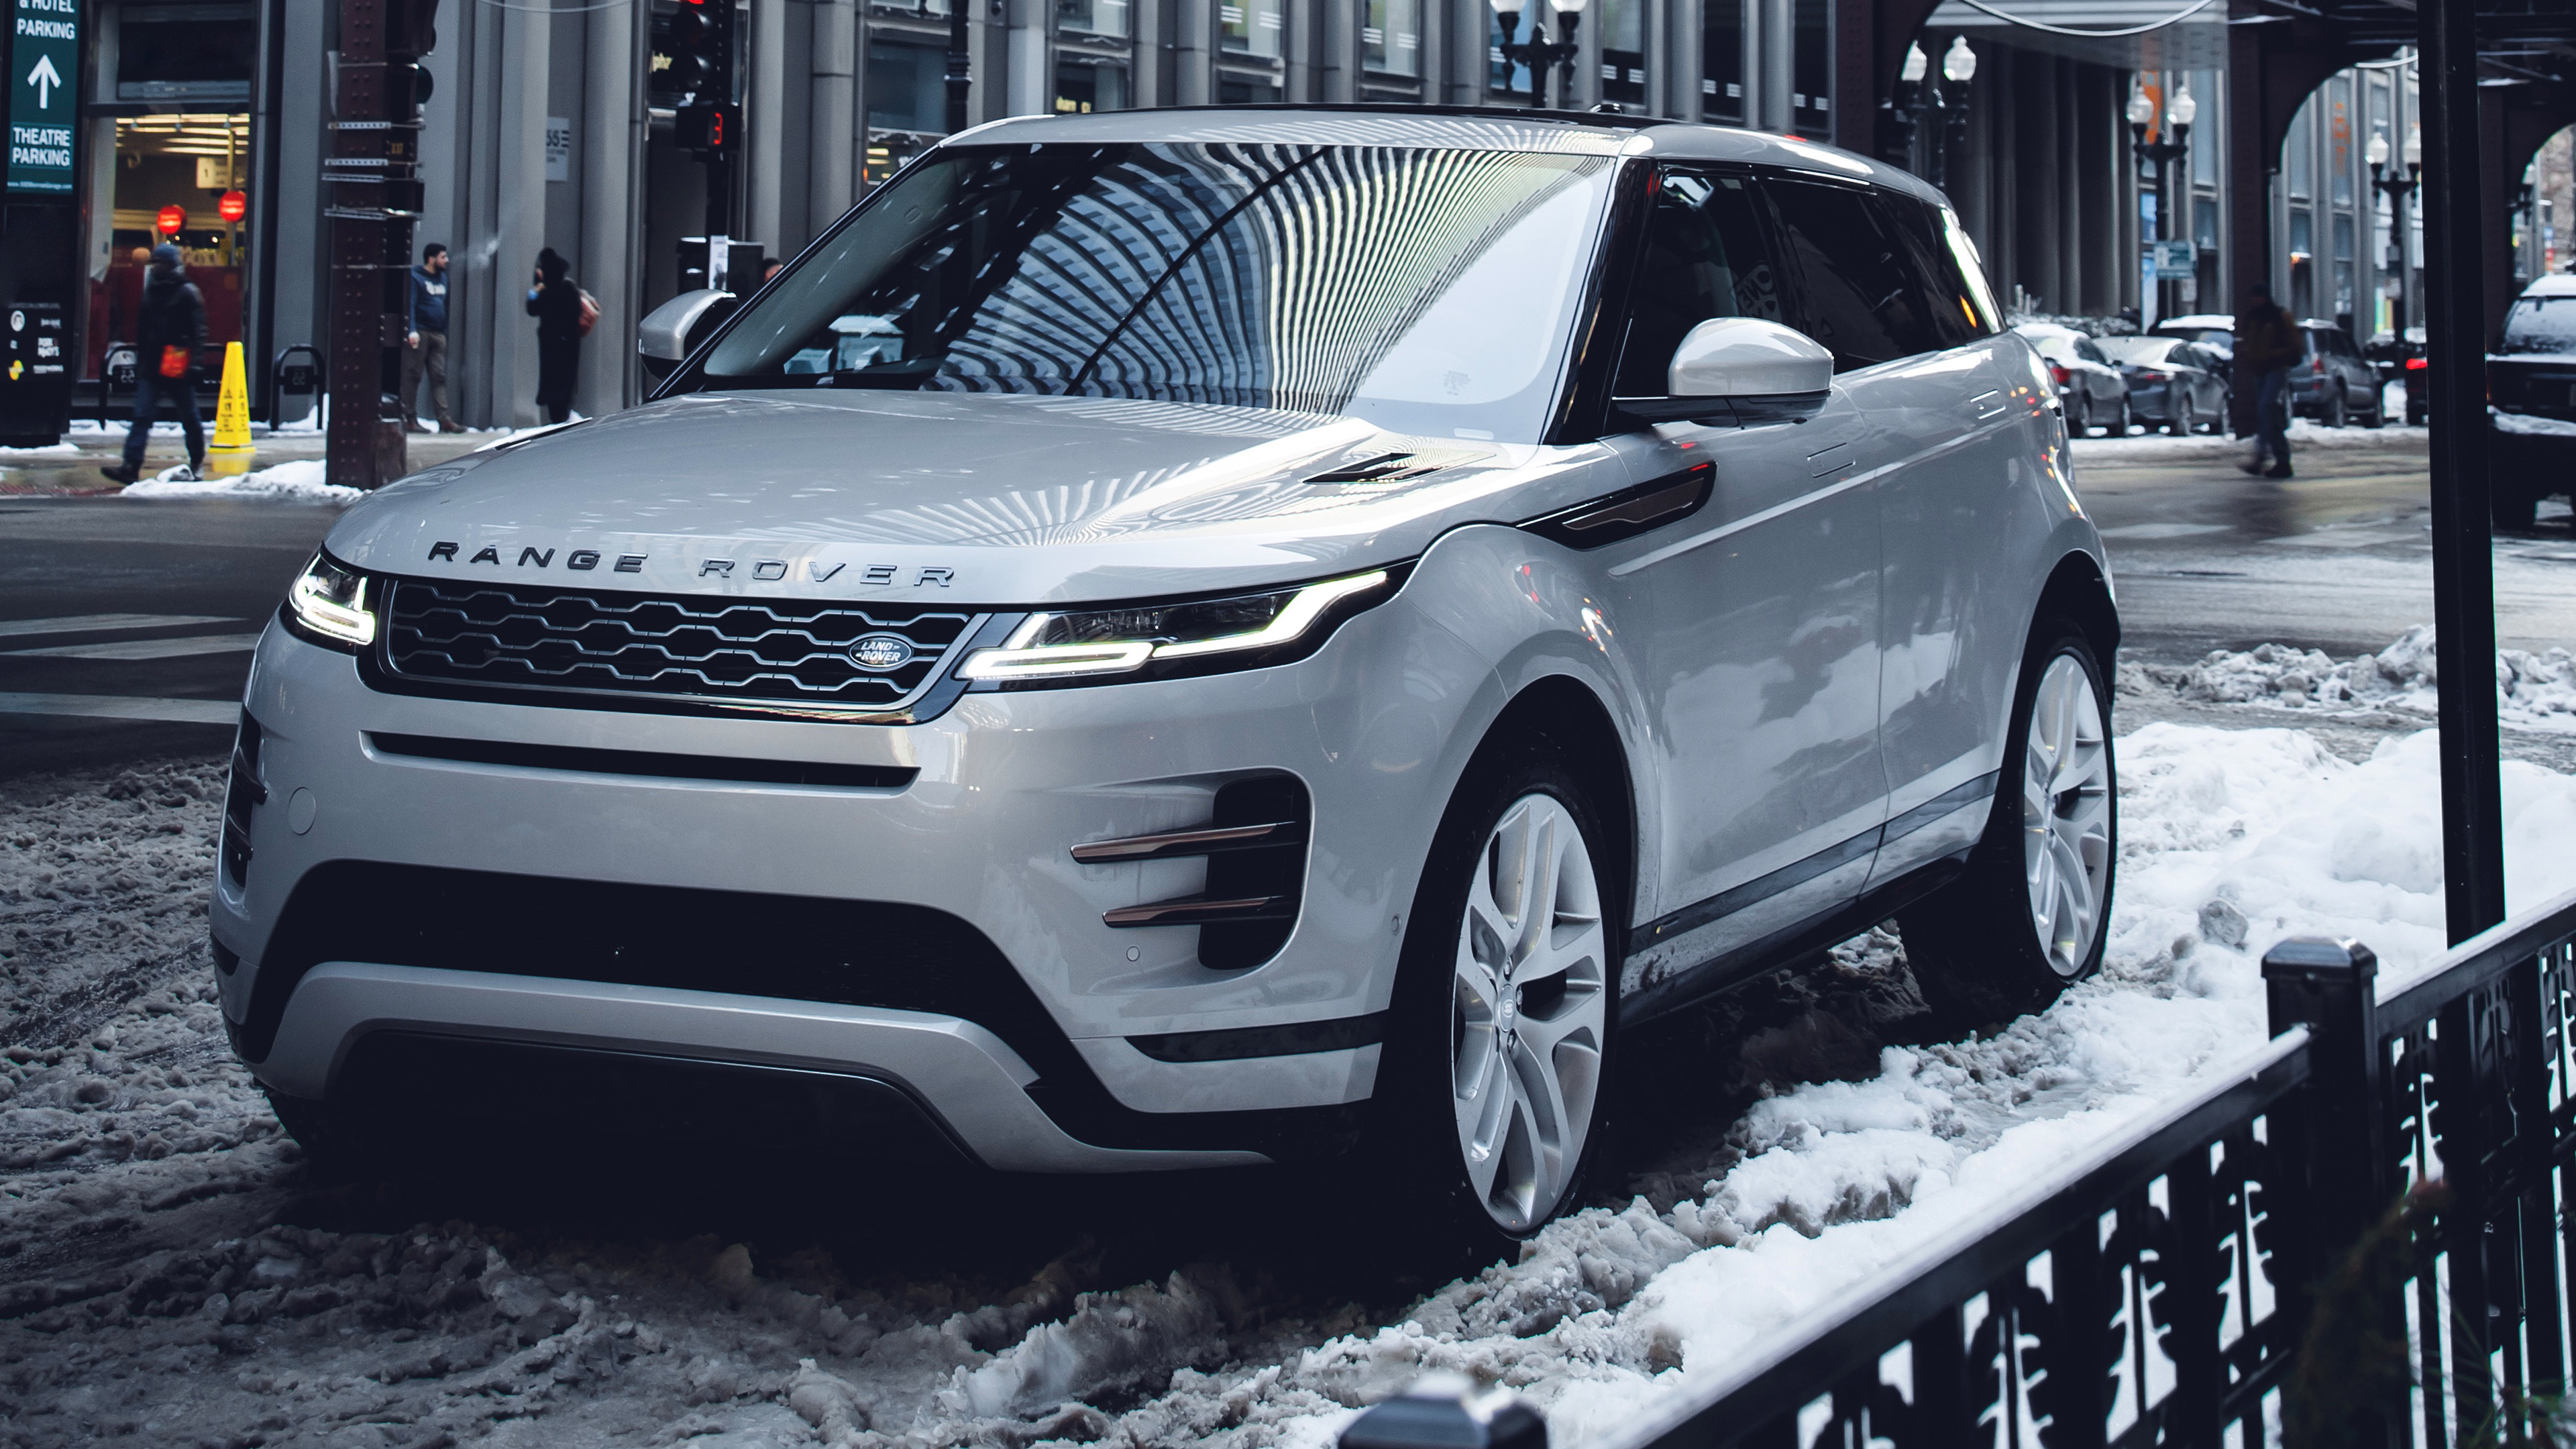 Range Rover Evoque P300 S R Dynamic 2019 4k Wallpapers Hd Wallpapers